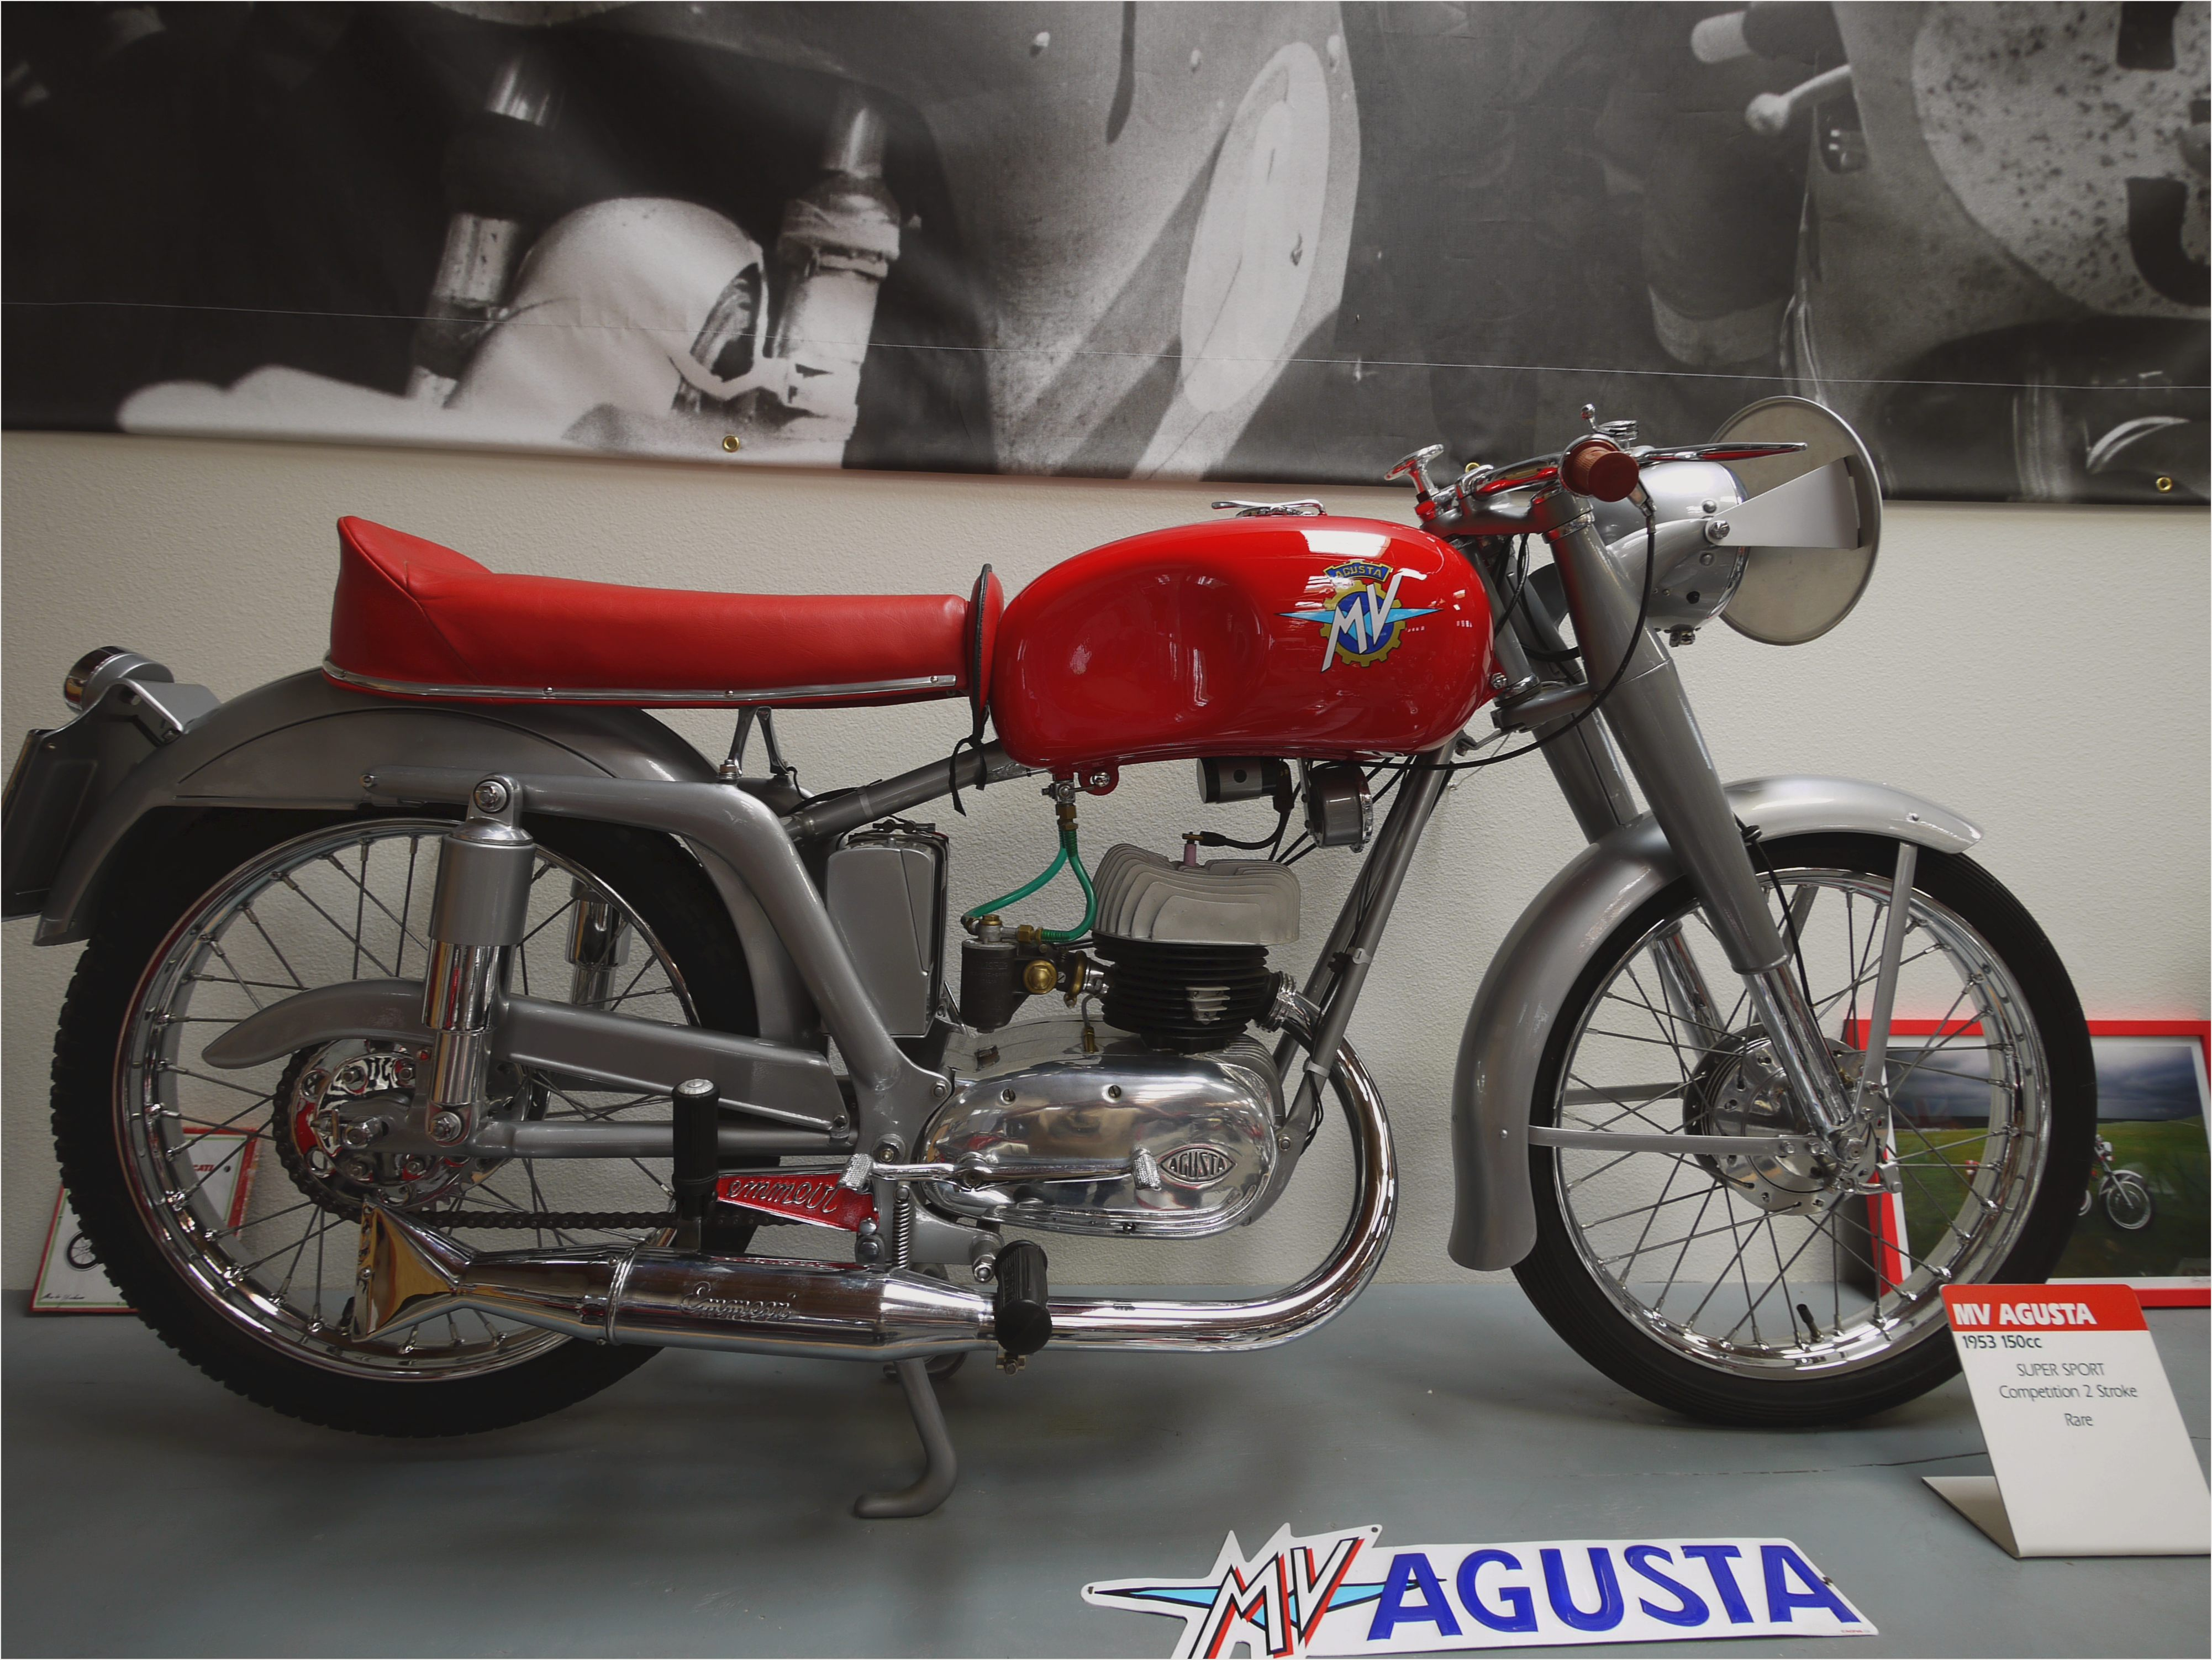 MV Agusta 125 SS 1978 images #113575